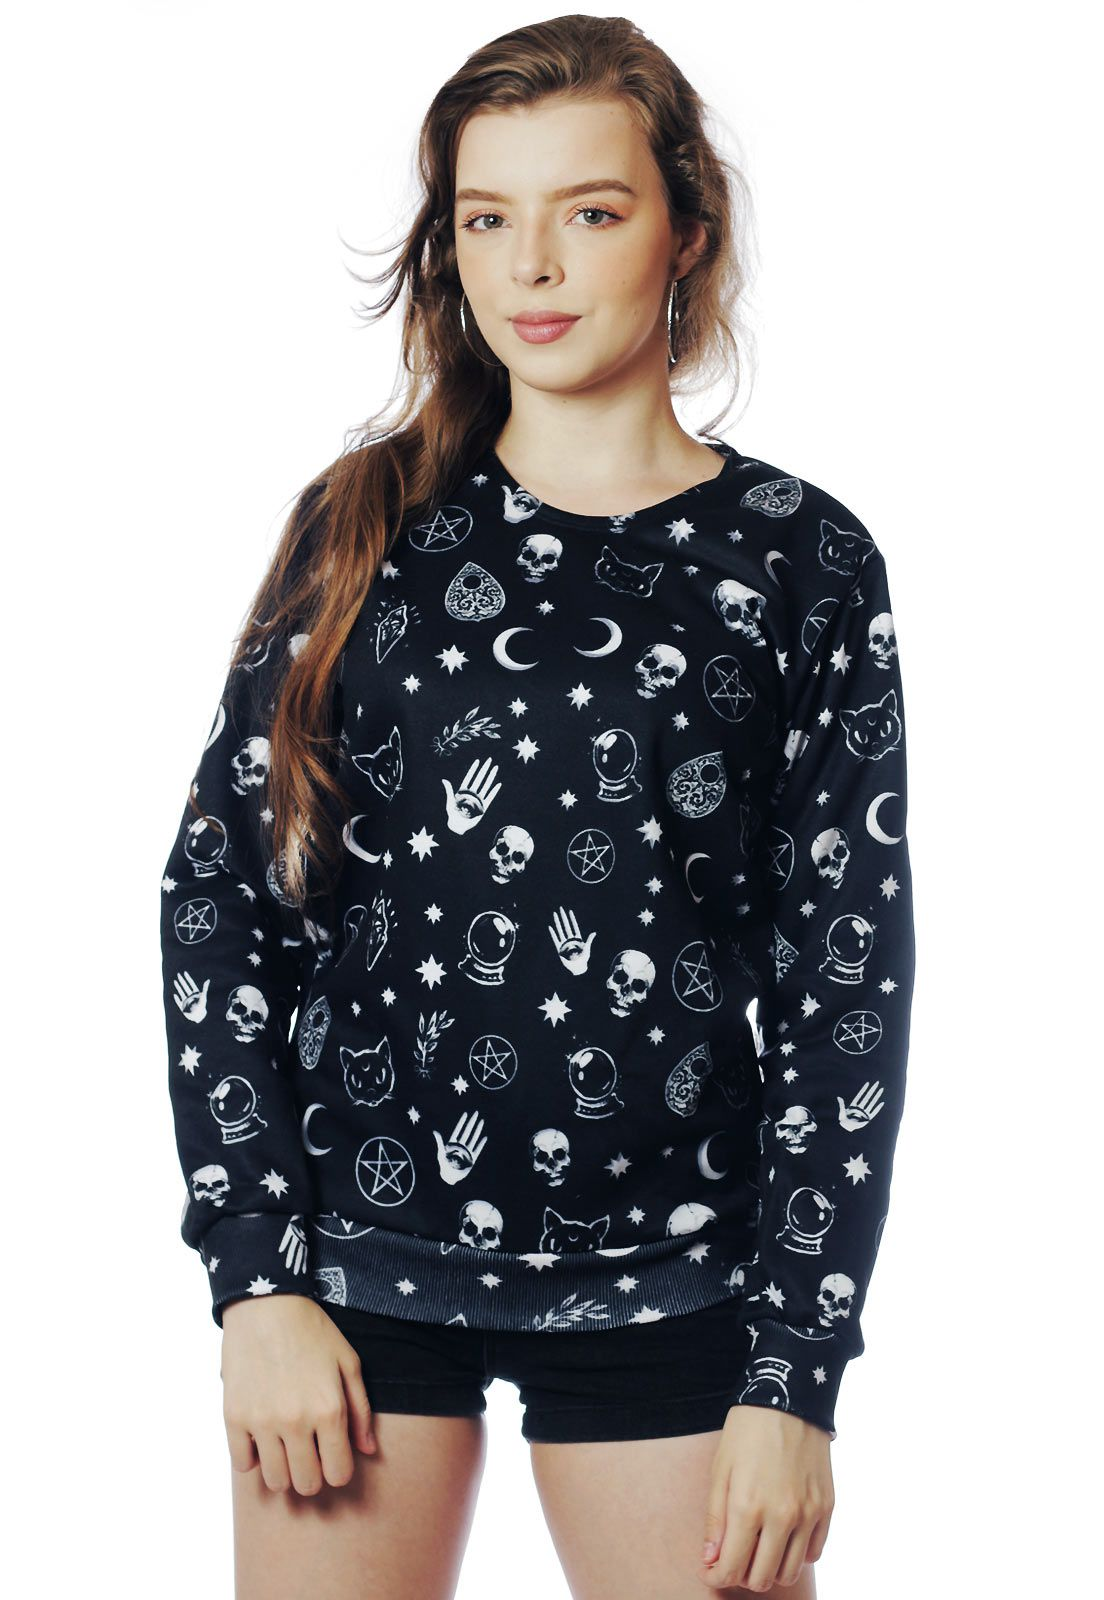 Blusa Moletom Tumblr Estampado ElephunK Full Print Unissex Black Magic